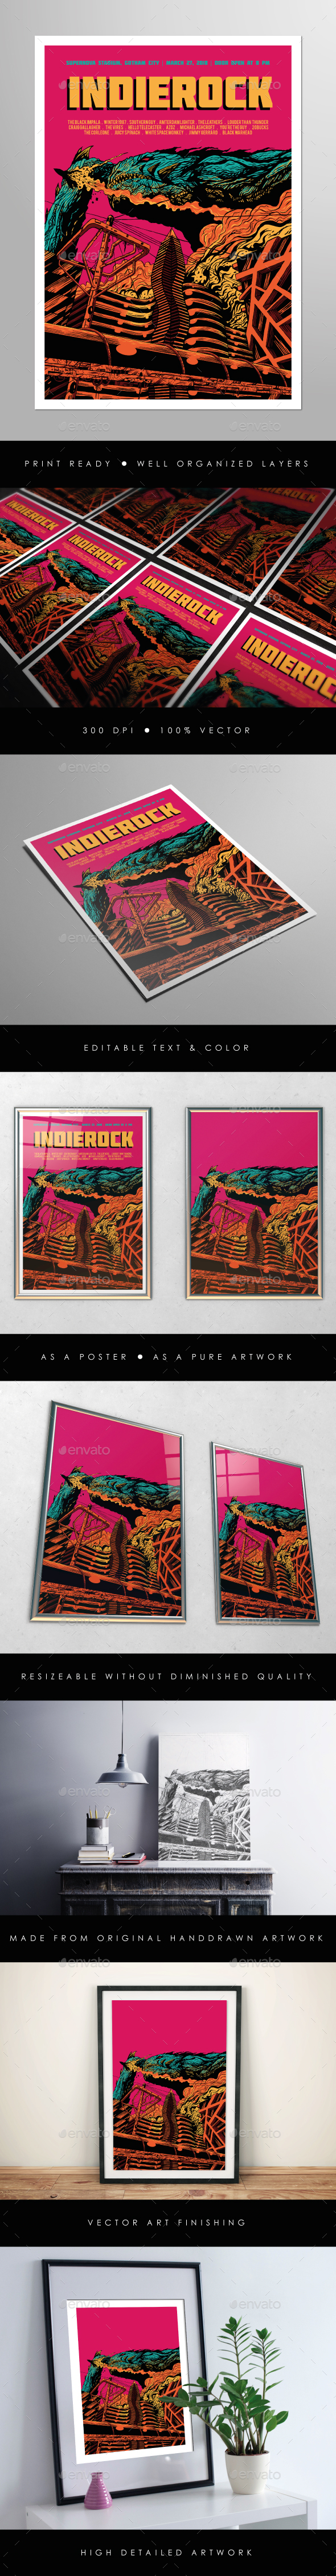 Indie Rock Vol. 10 Flyer Poster - Concerts Events